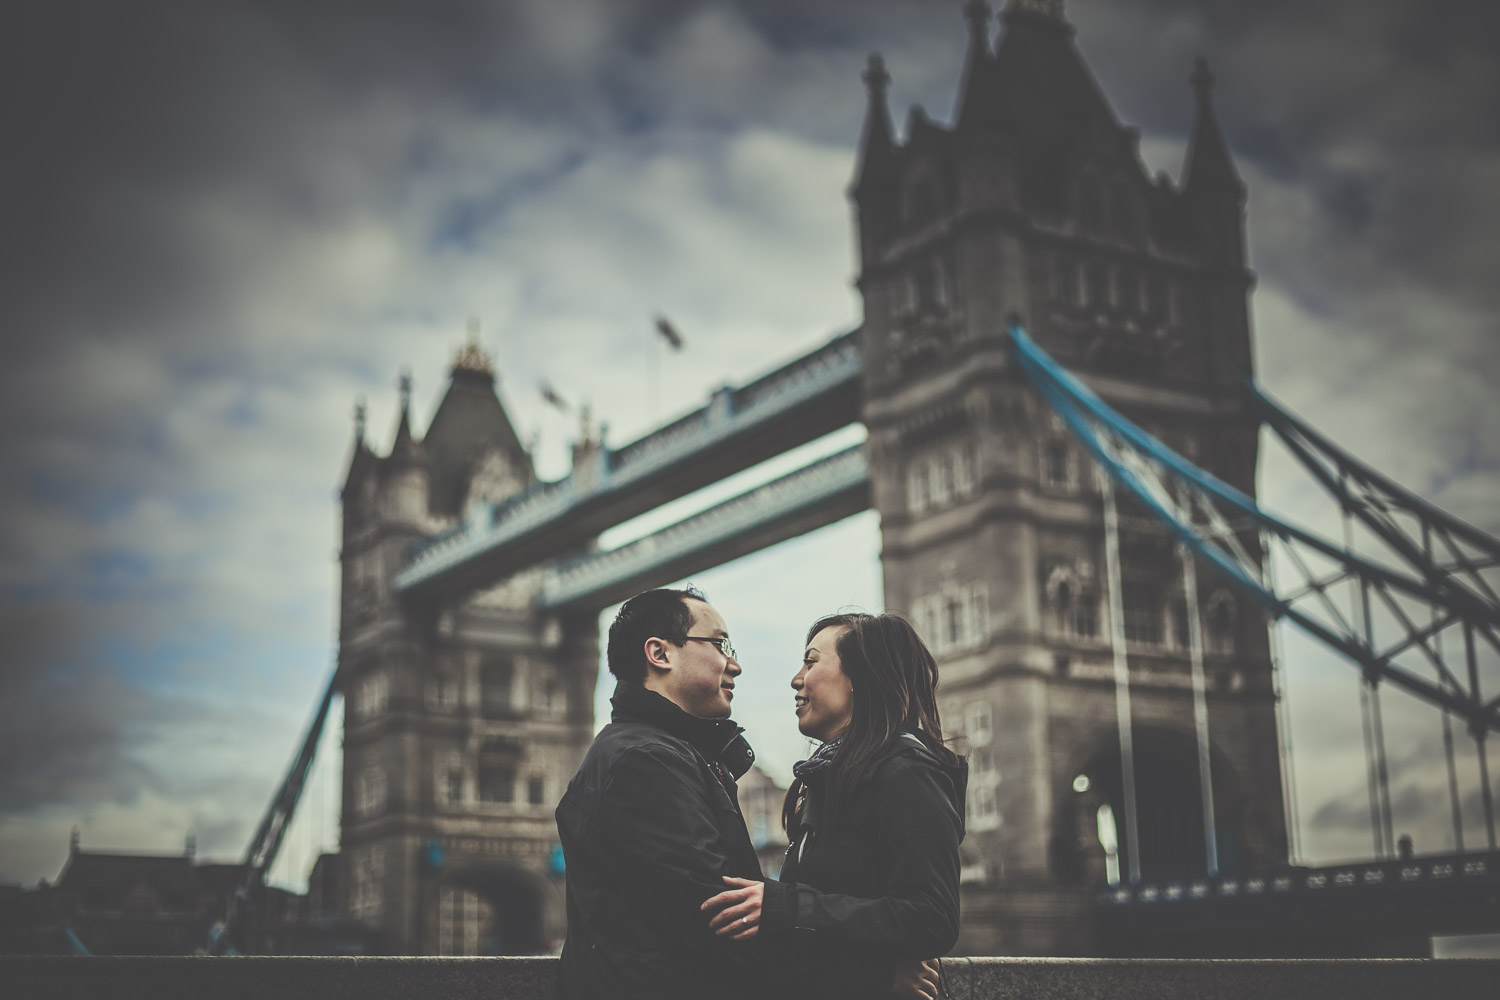 pre-wedding-engagement-session-in-london-portchester-and-notting-hill-hampshire-wedding-photographer-35.jpg